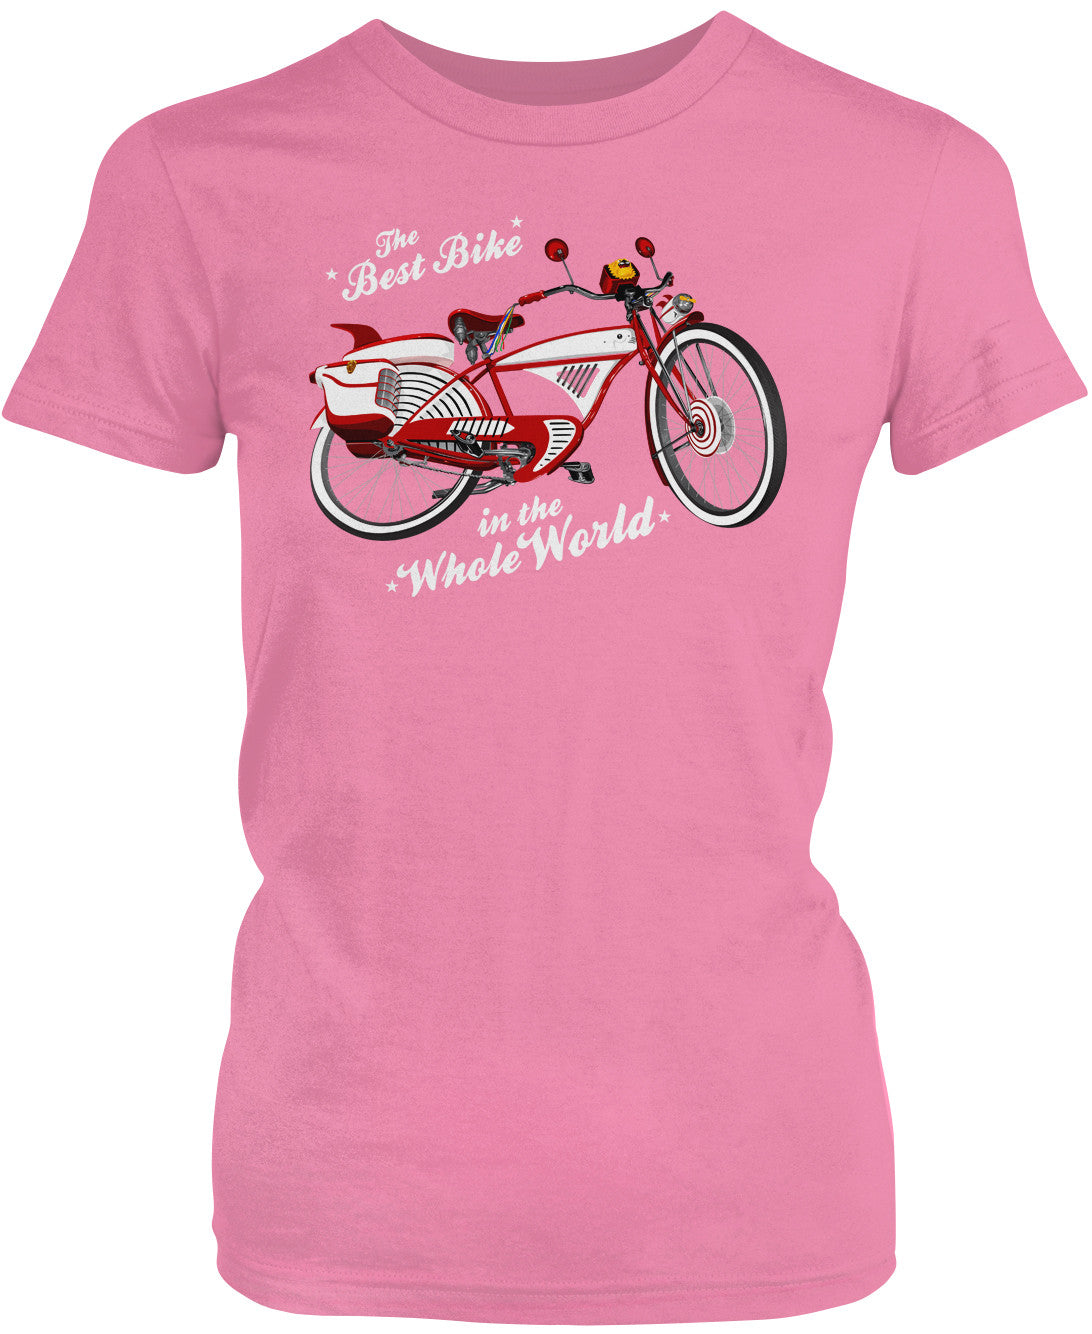 Pee Wee's Best Bike Women's T-Shirt